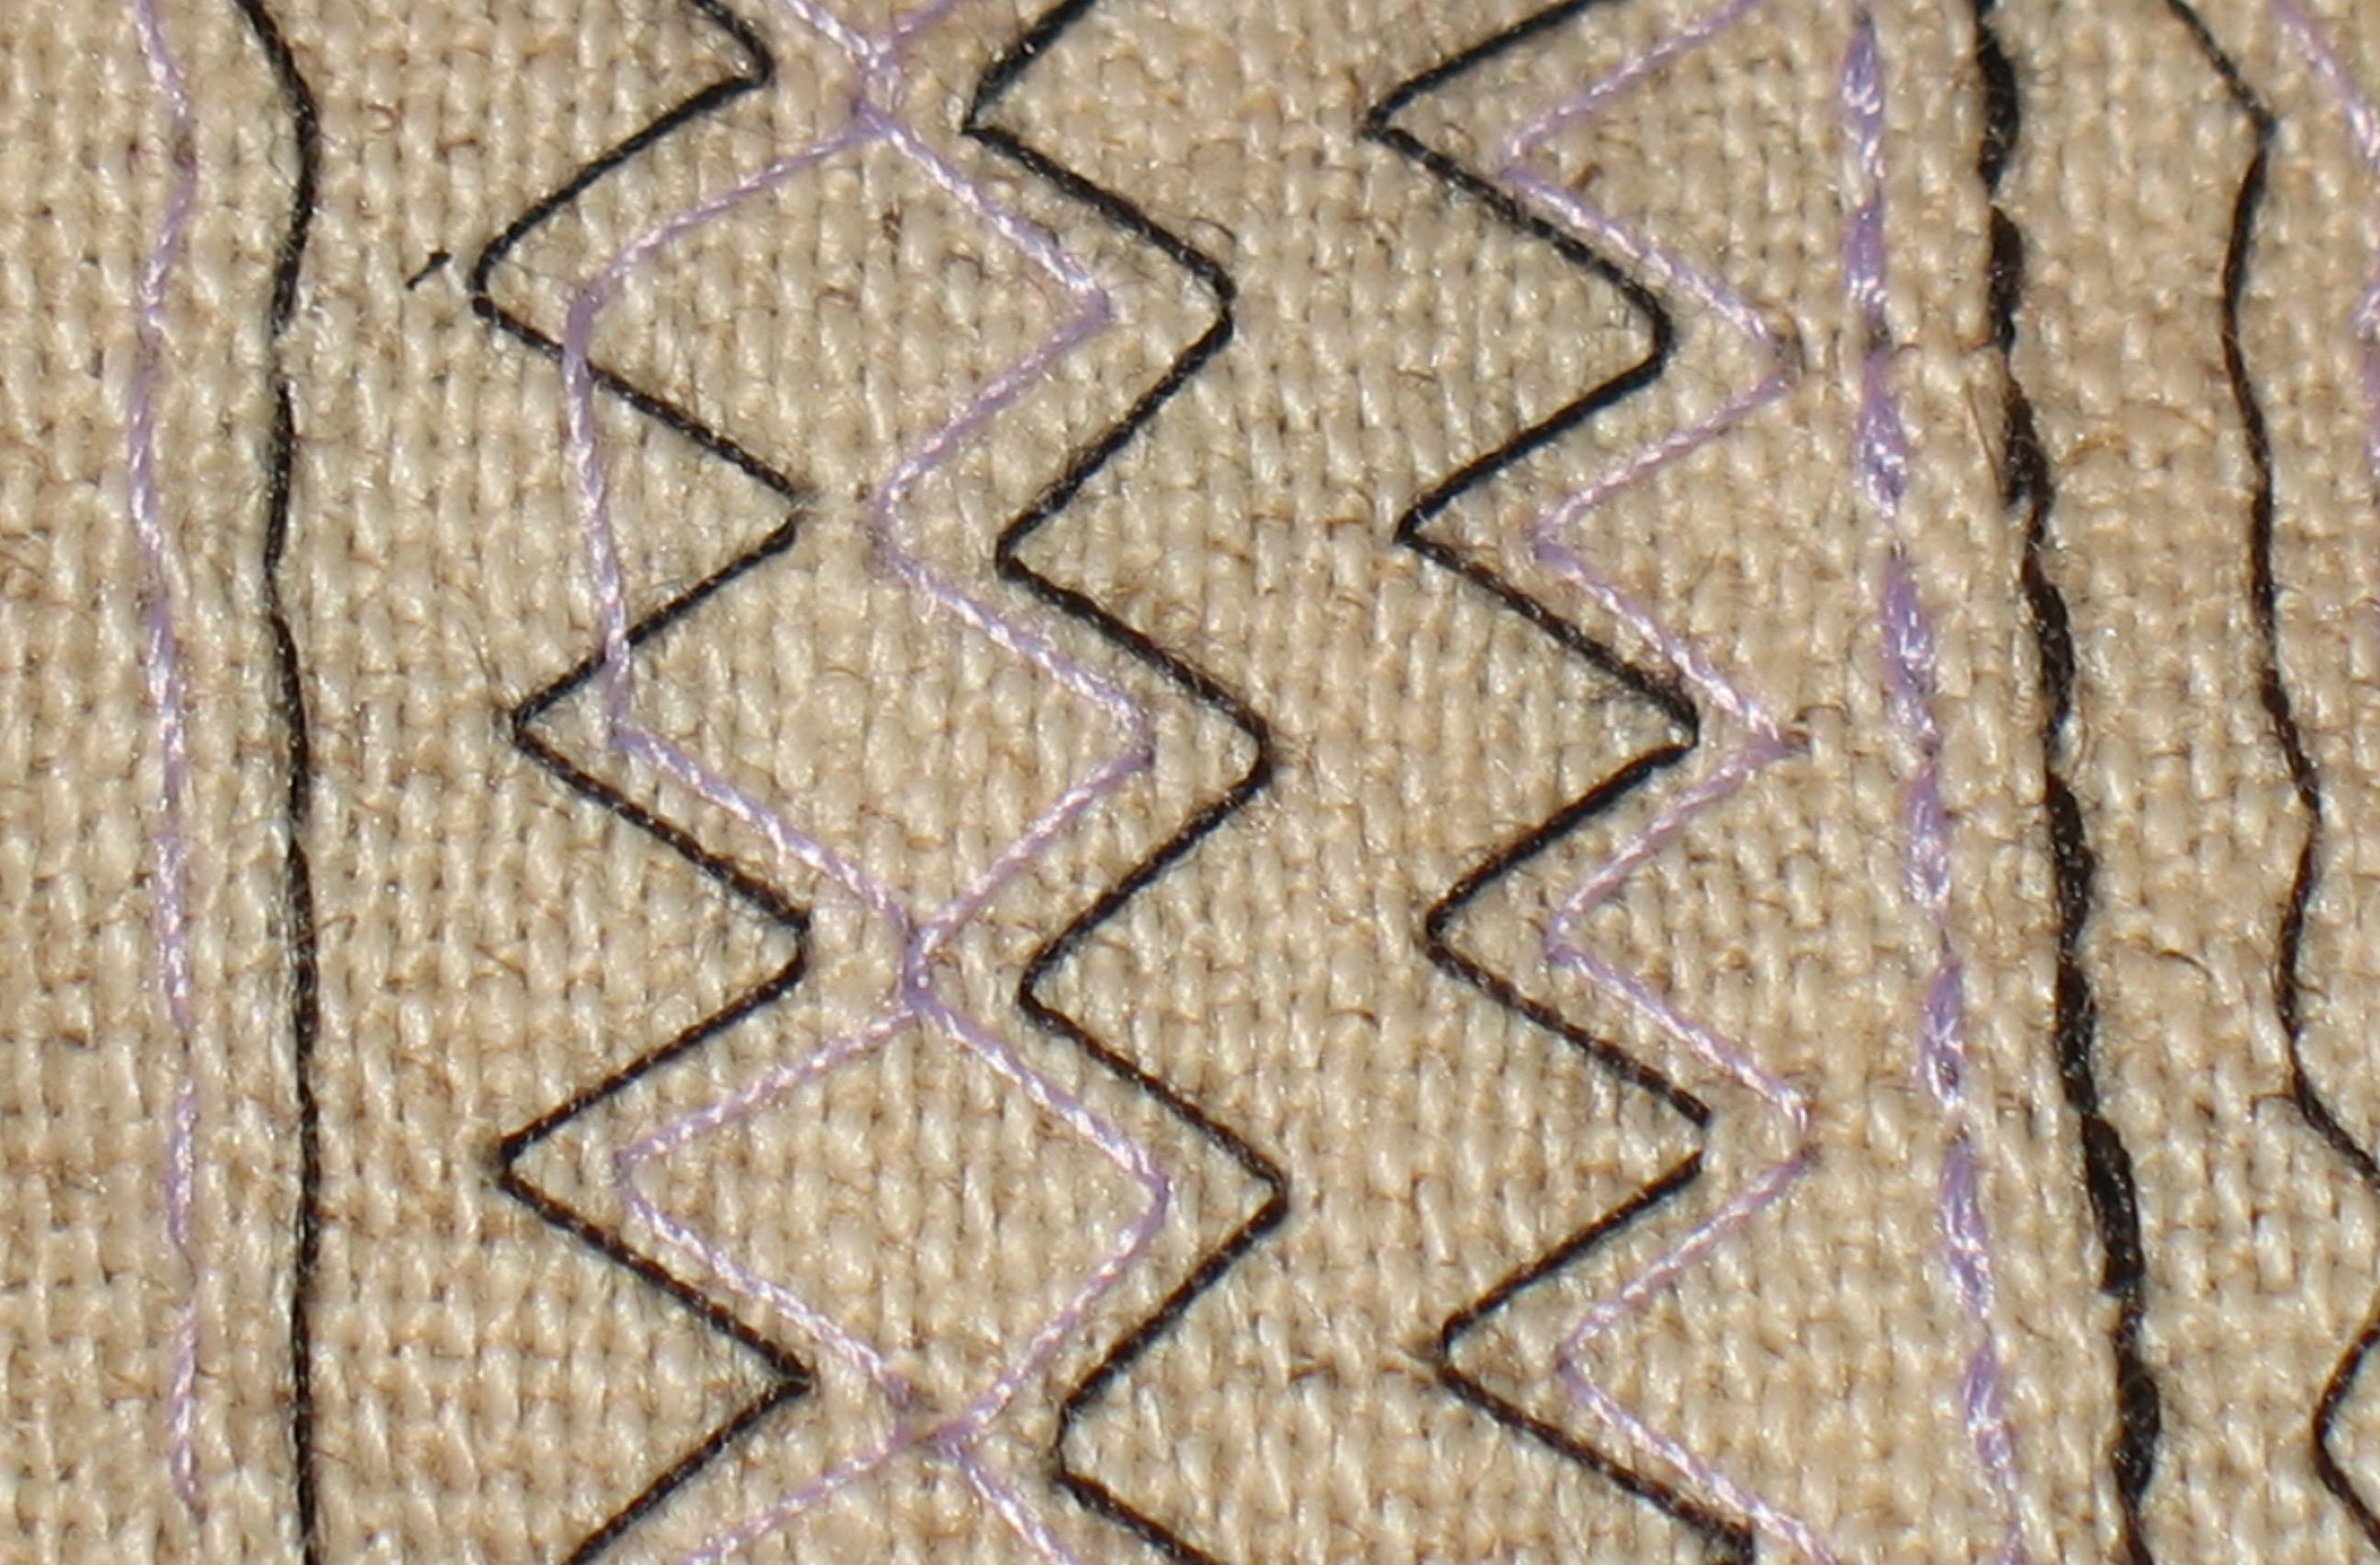 List Of Different Types Of Knitting Stitches : List of Knitting Stitches submited images.